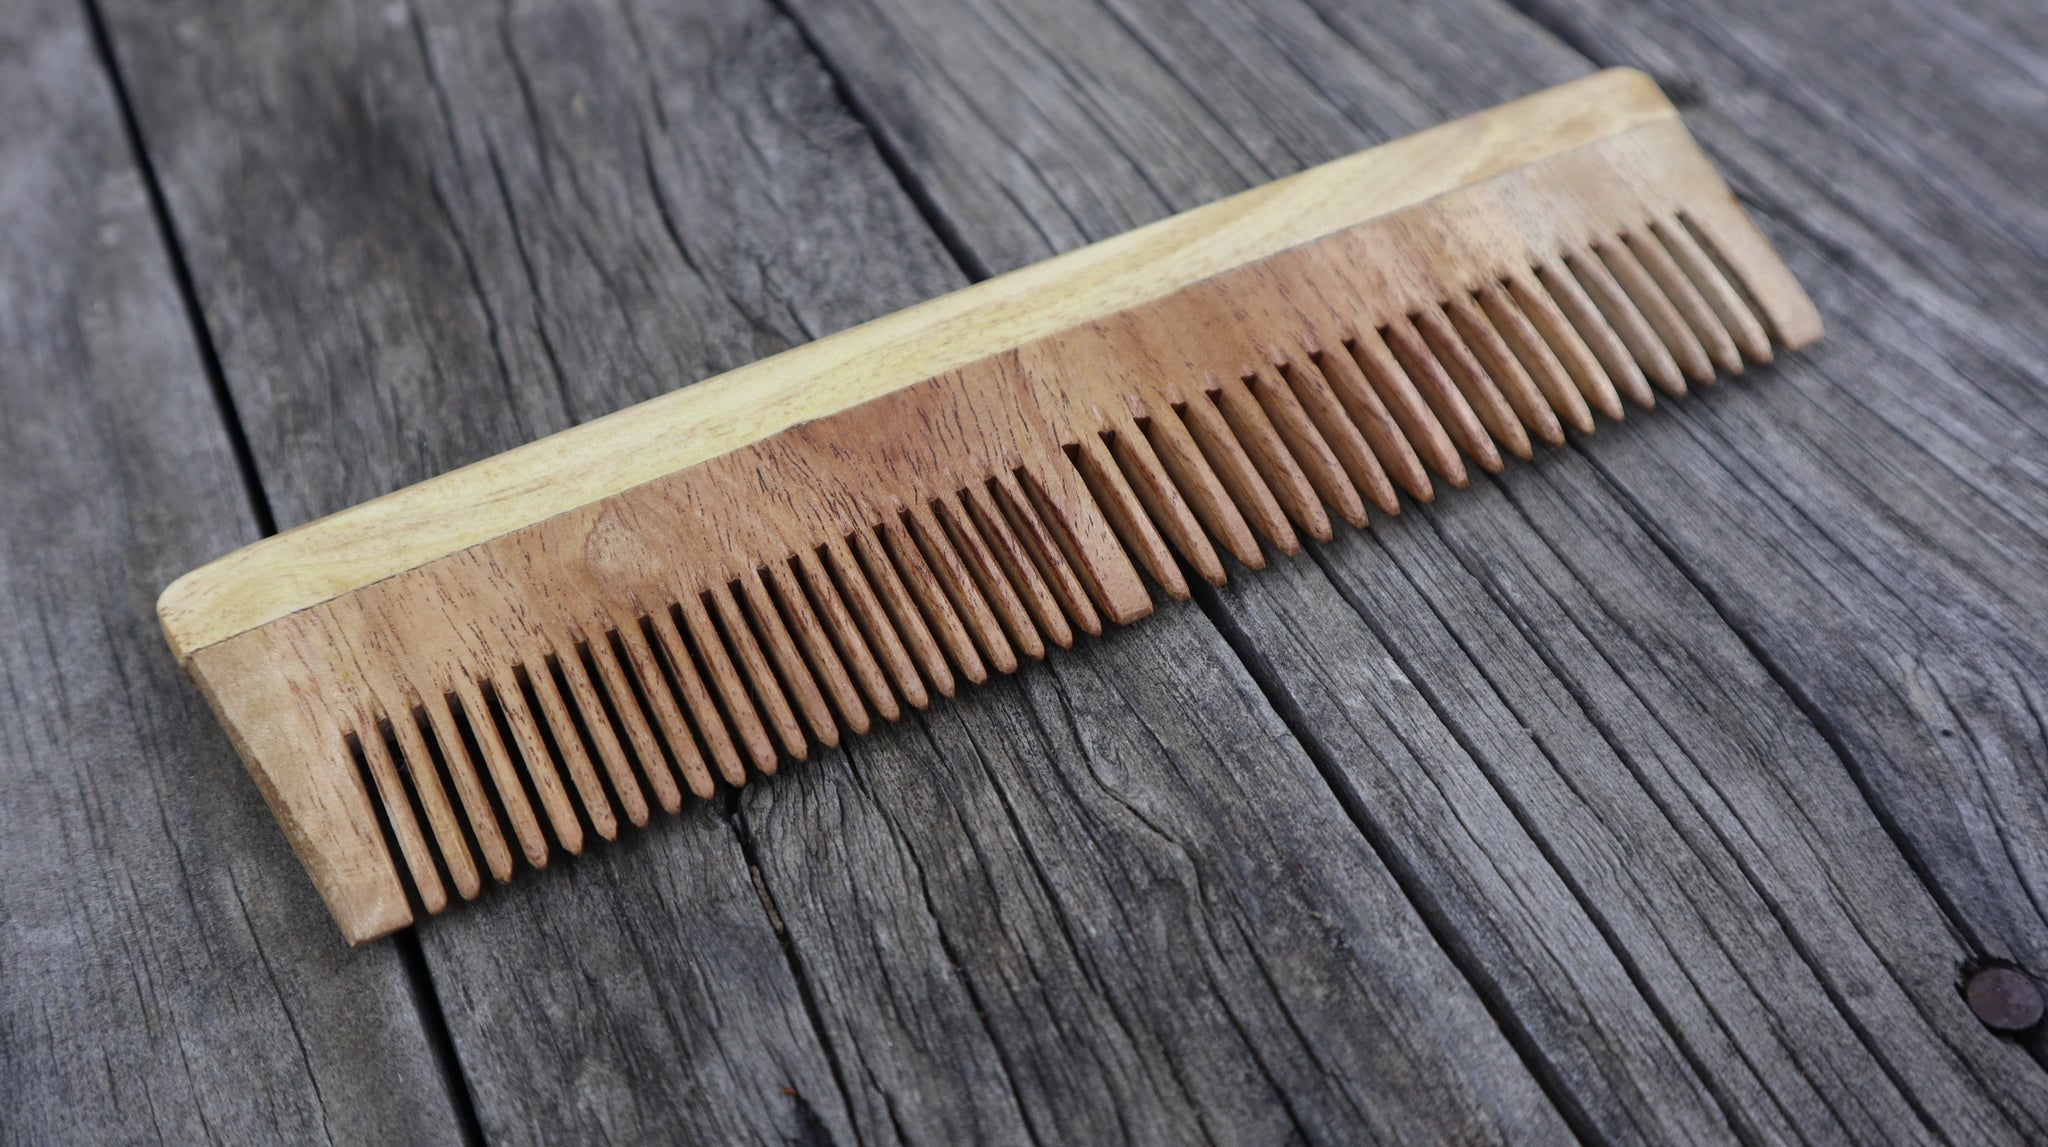 Fair Trade Ethical Wooden Two Widths Comb